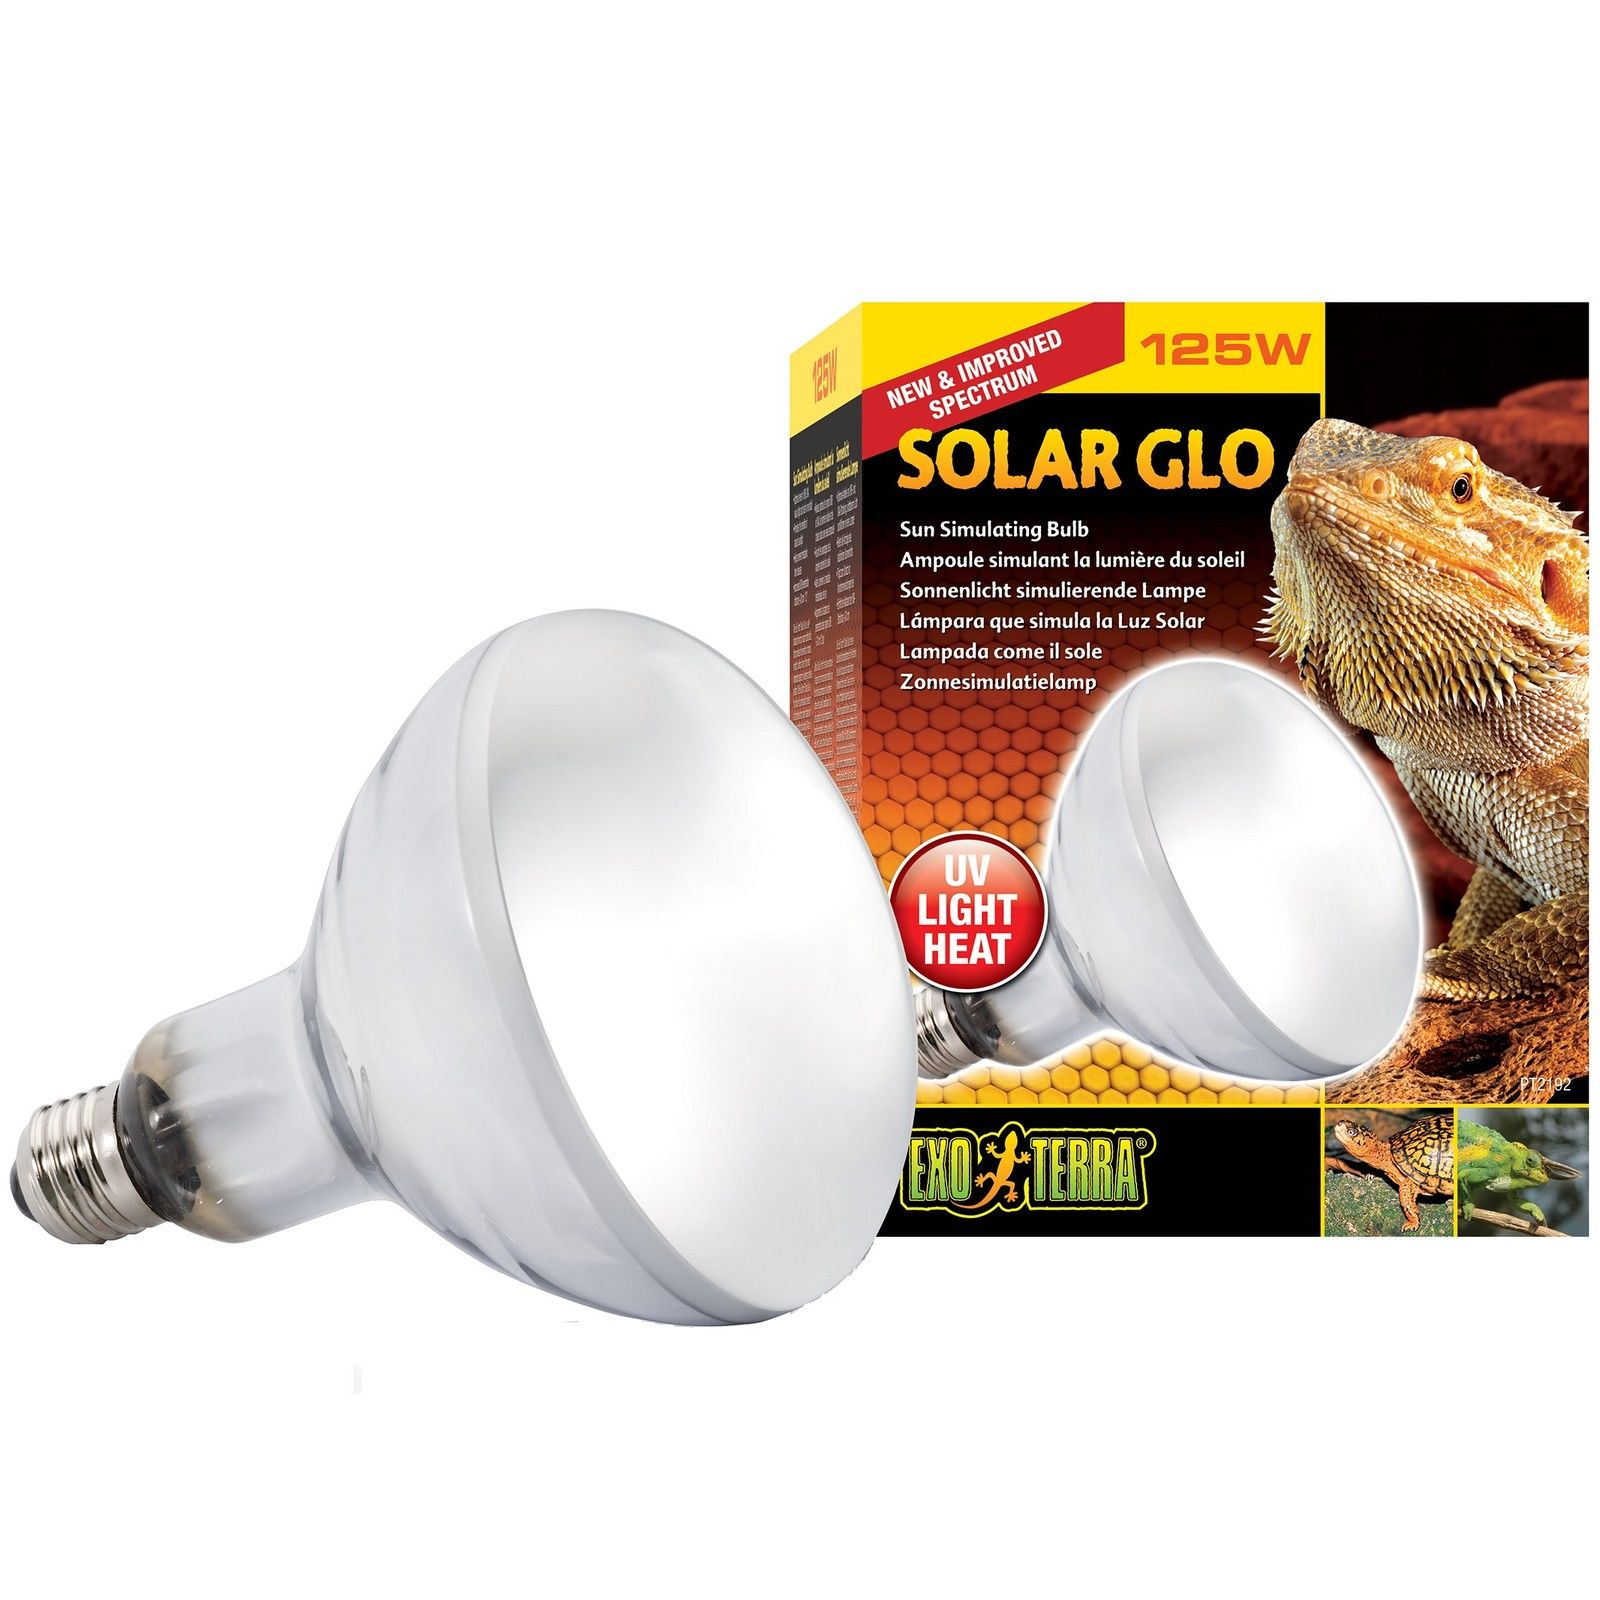 Exo Terra Solar Glo Heat Bulb Daylight Reptile Lighting